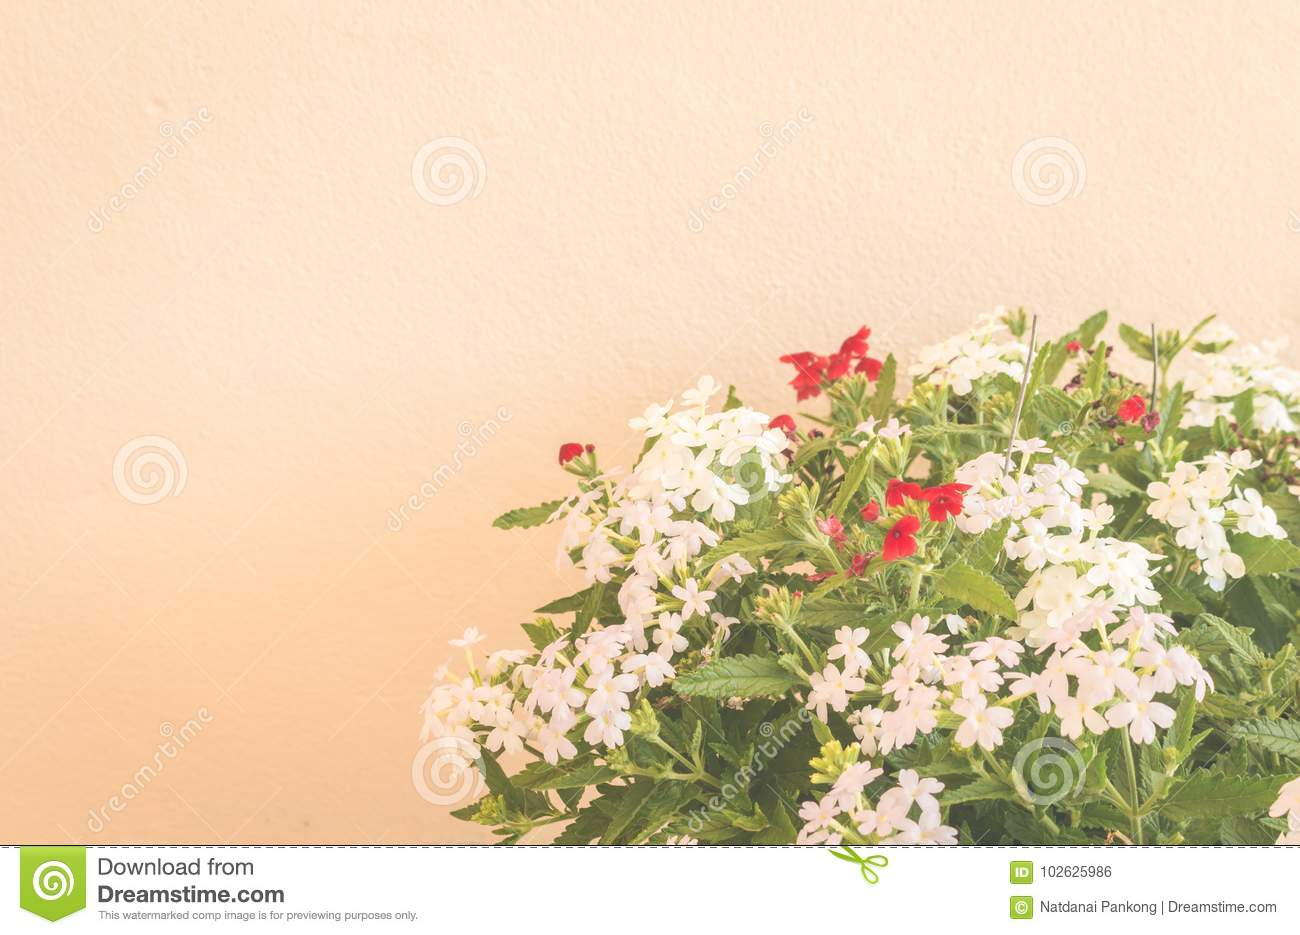 Still Life With Flowers On Wall Background Stock Photo - Image of ...